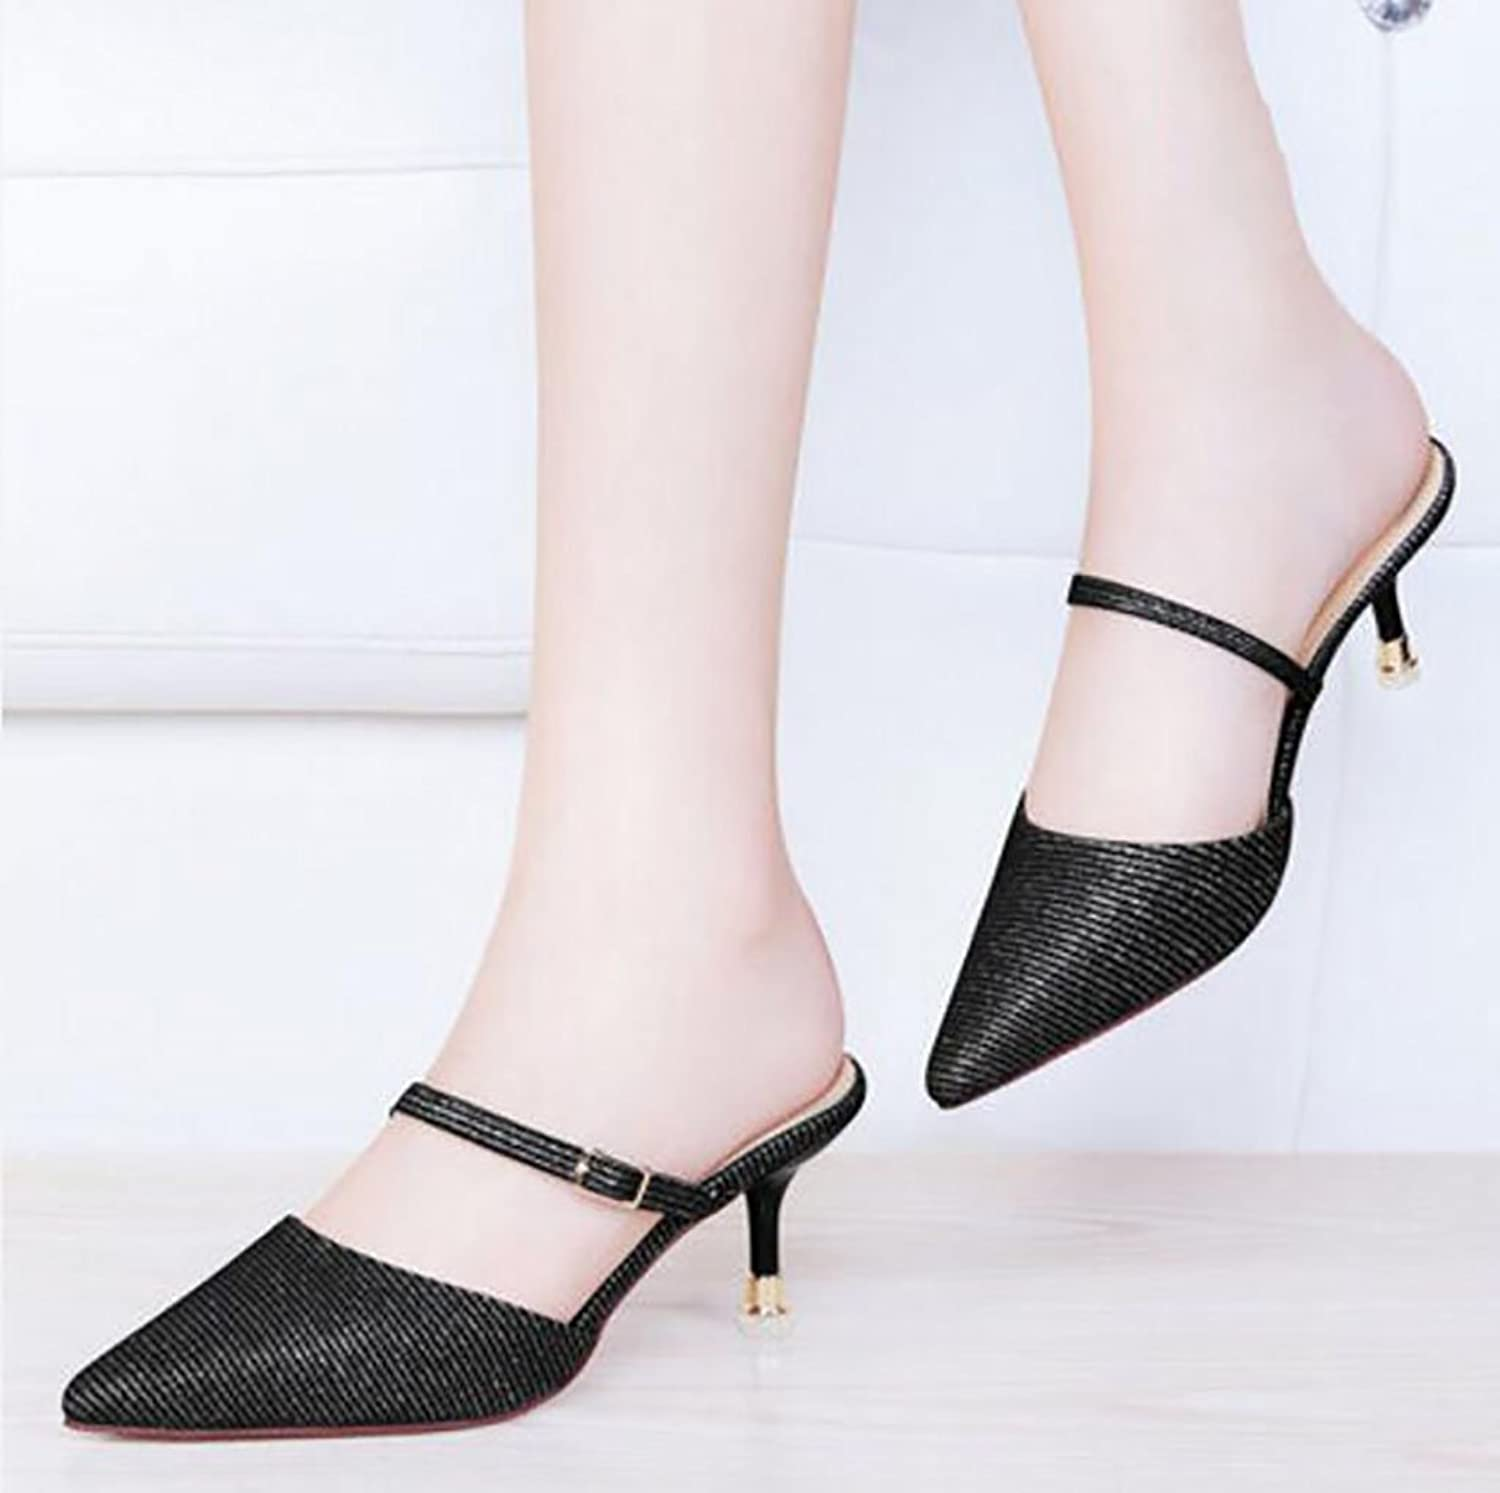 Baotou Half Slippers Female Summer fine Sandals wear Stylish Lazy shoes high Heel Sandals and Slippers Flat Sandals,Fashion Sandals (color   A, Size   35)